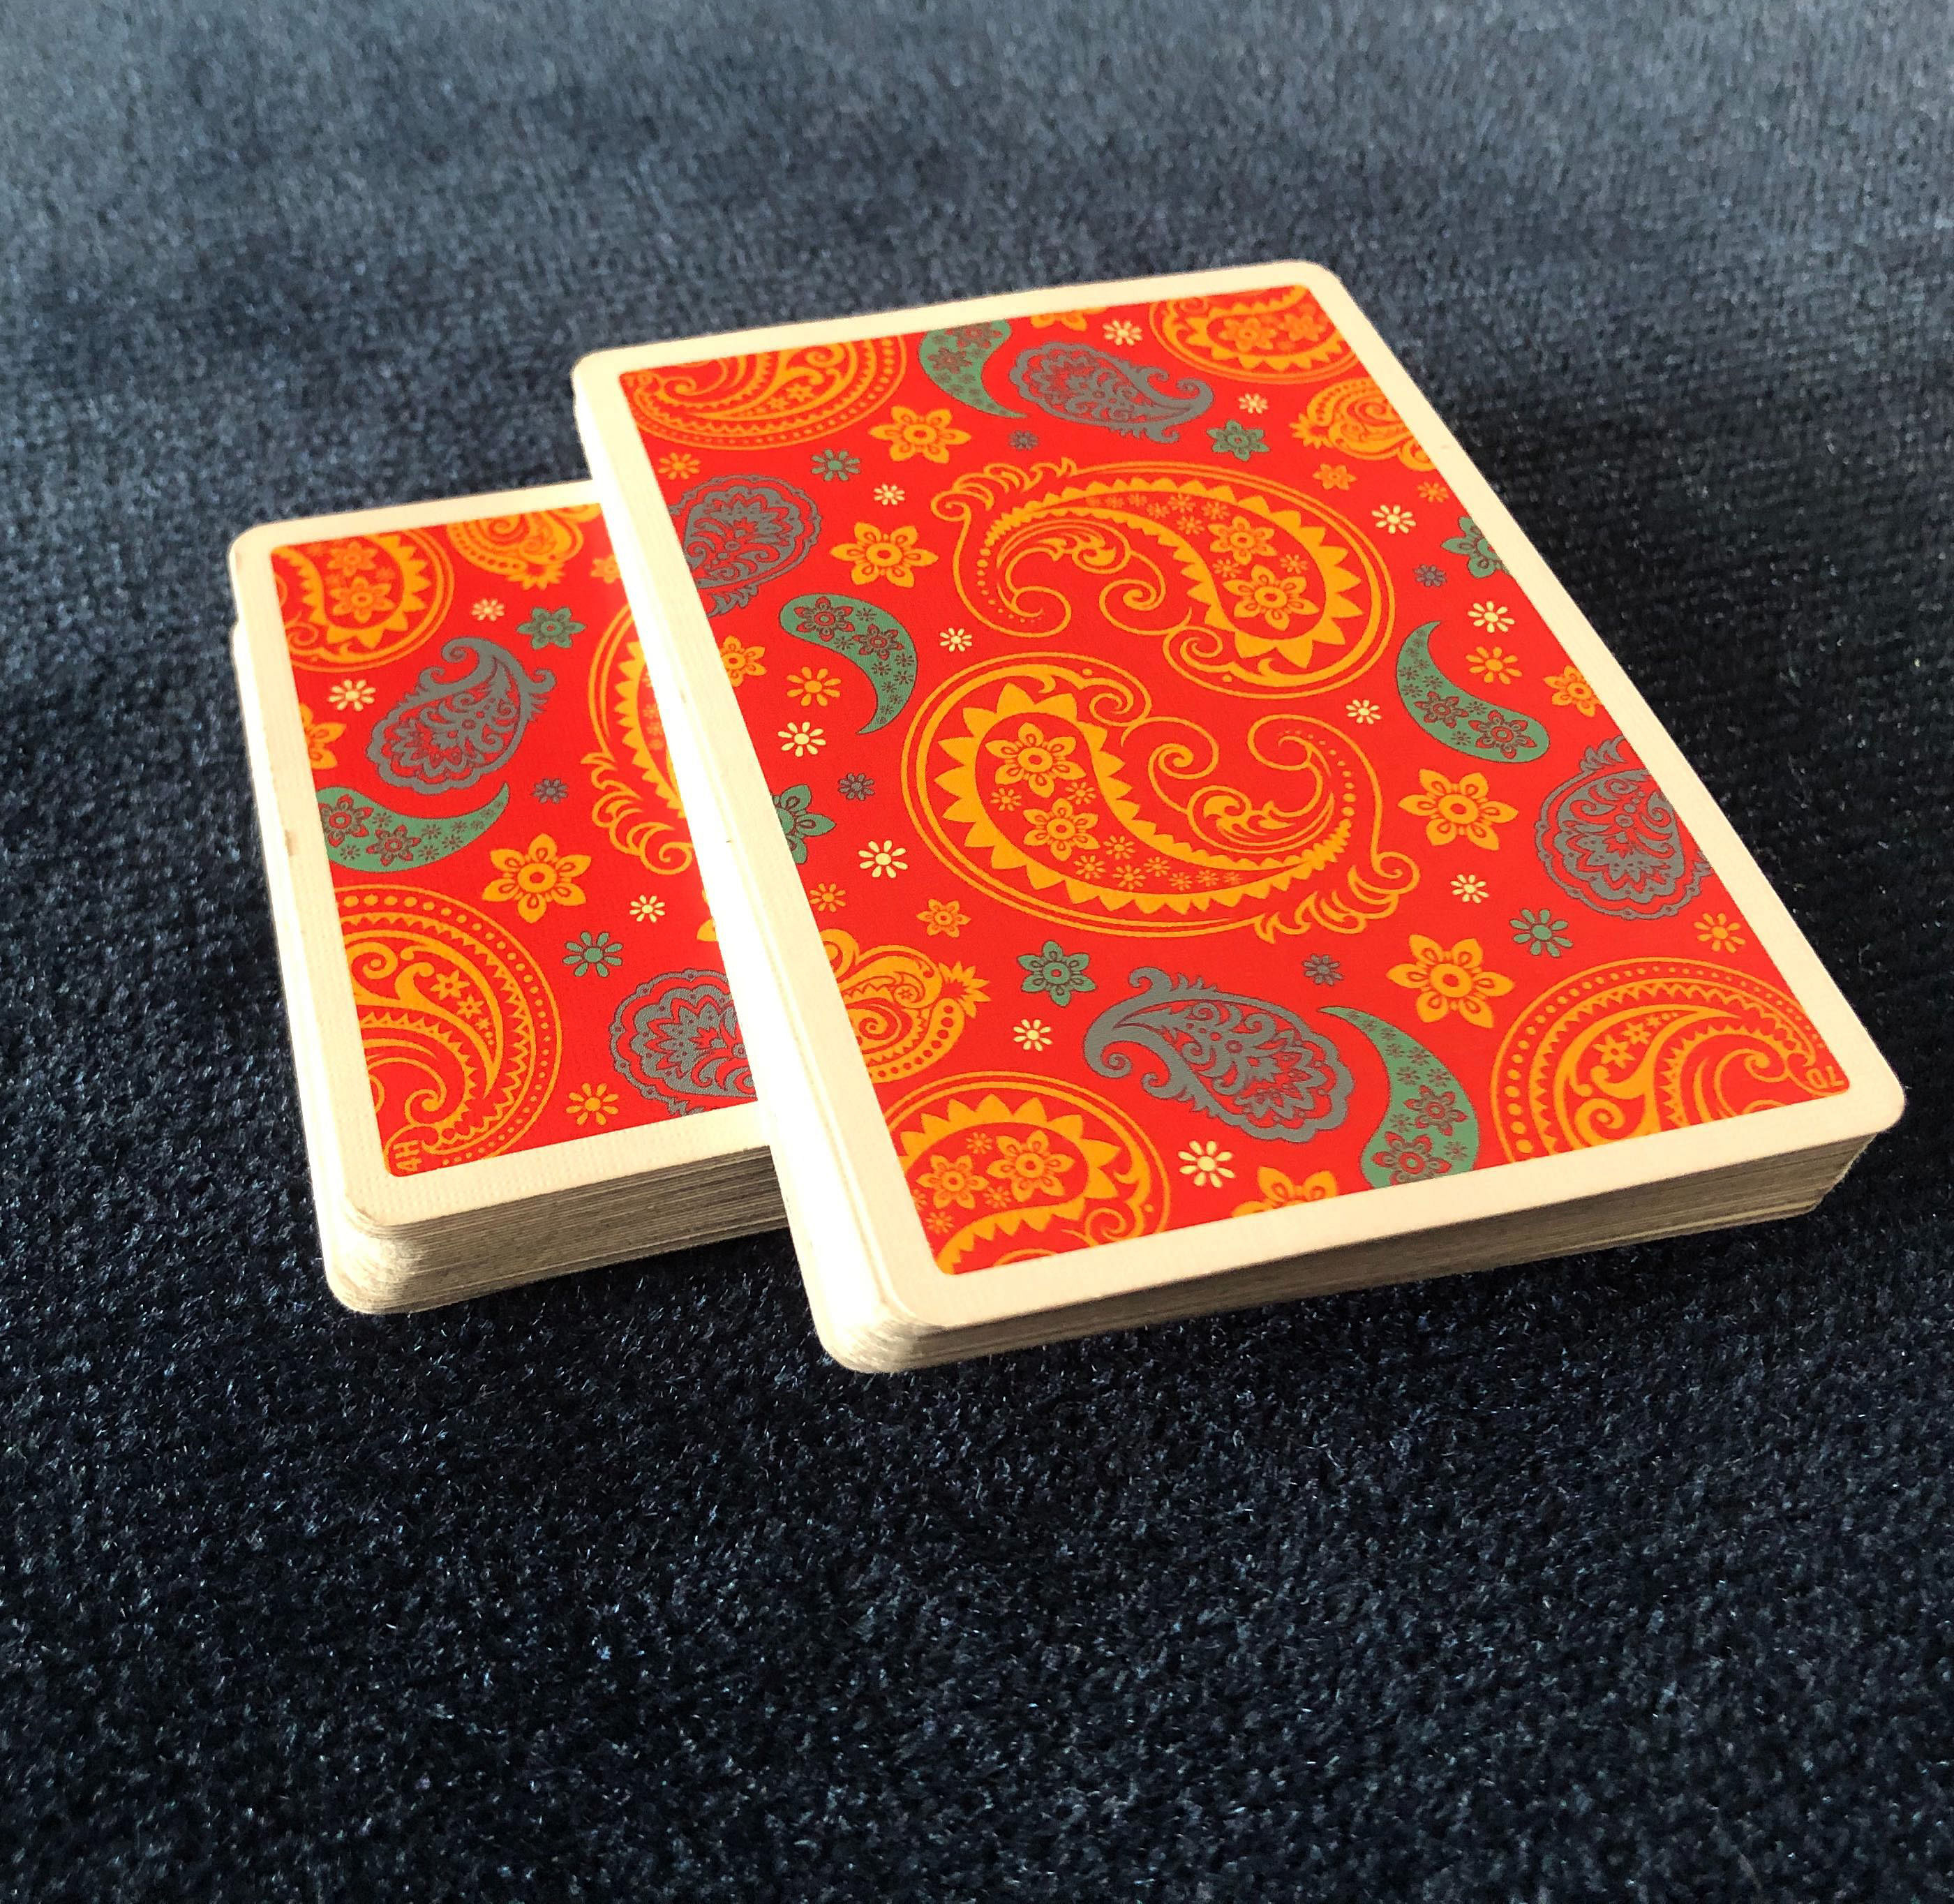 The Dapper Deck Playing Cards from Vanishing Inc. are used to before an easy card trick with the cross cut force